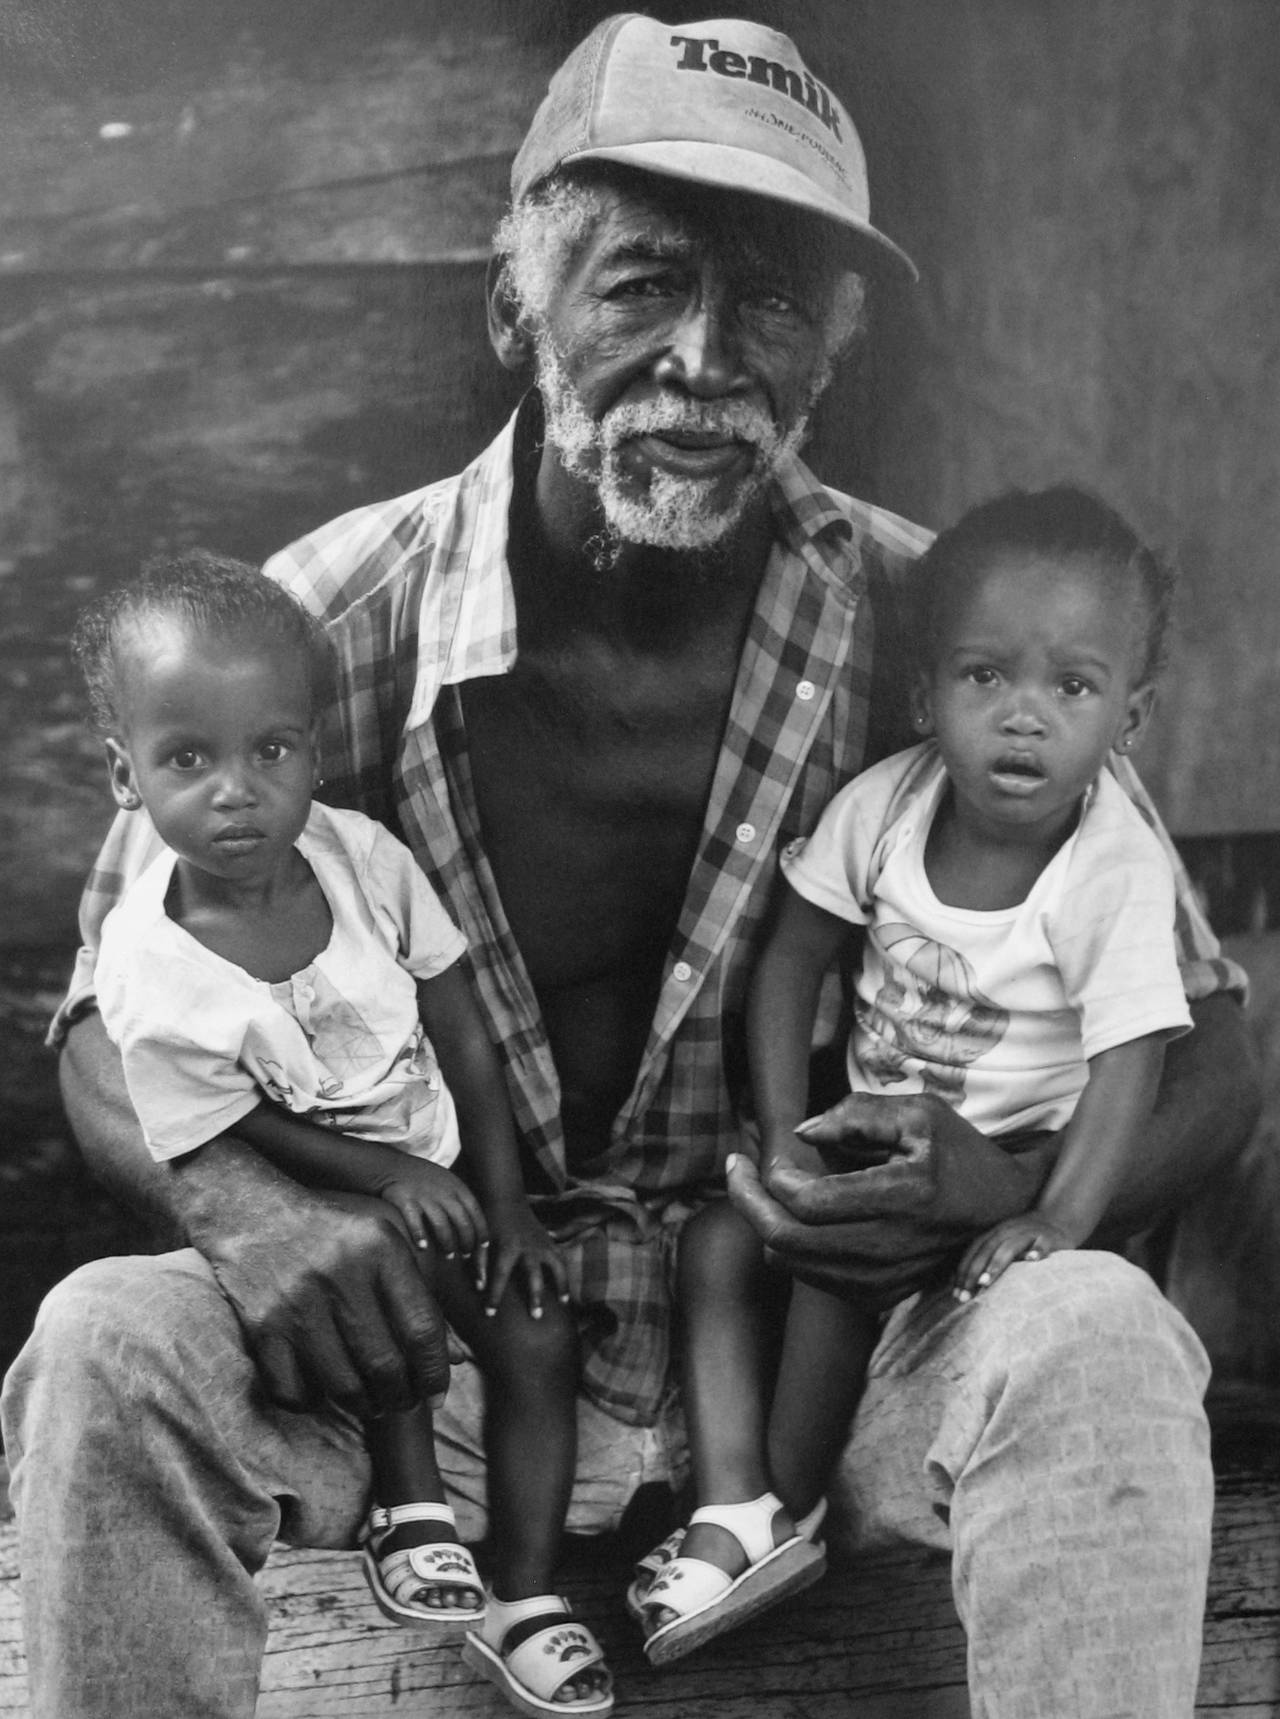 Earlie Hudnall Jr. Black and White Photograph - Man with Twins, Belize